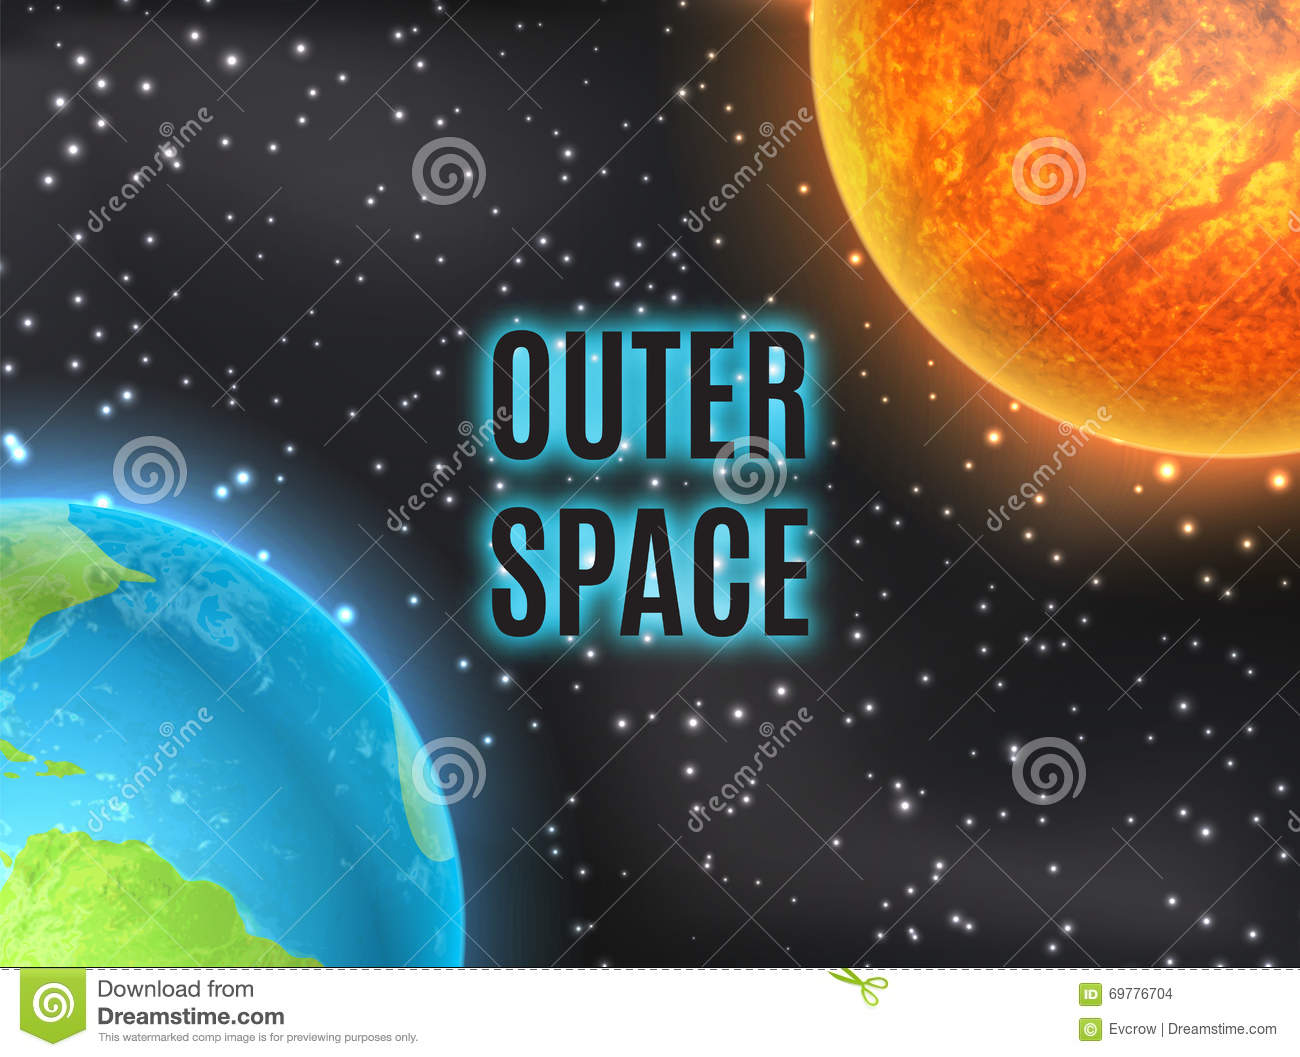 Arth and sun stock vector image 69776704 for Outer space elements